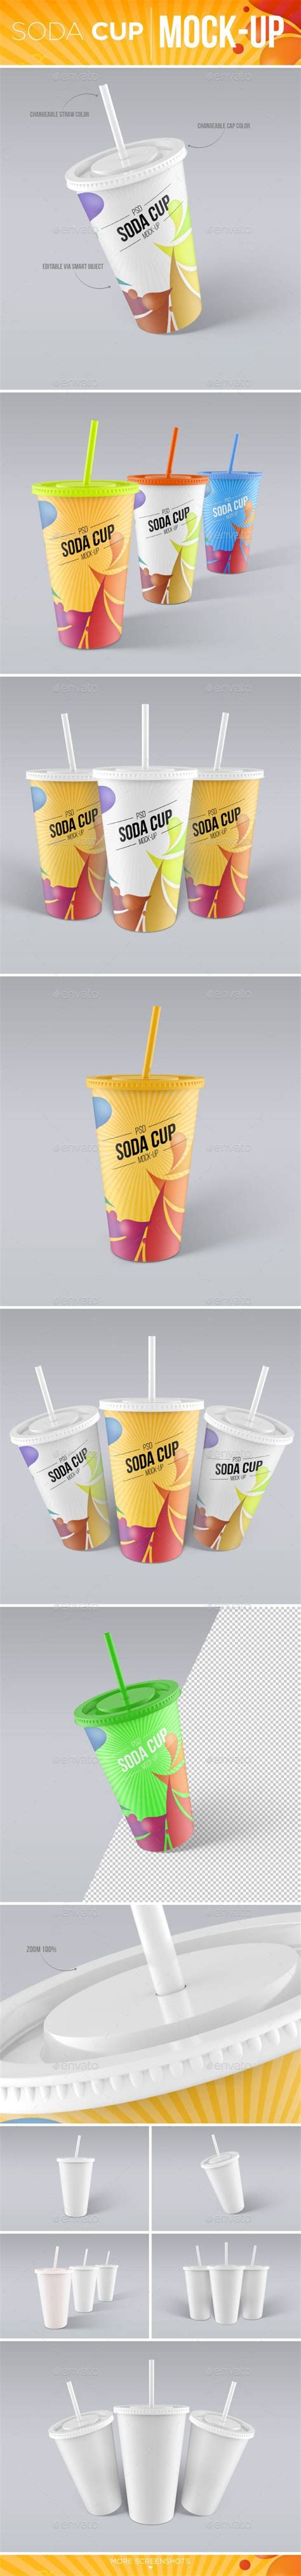 mockup design labs soda cup mock up cup design sodas and photoshop